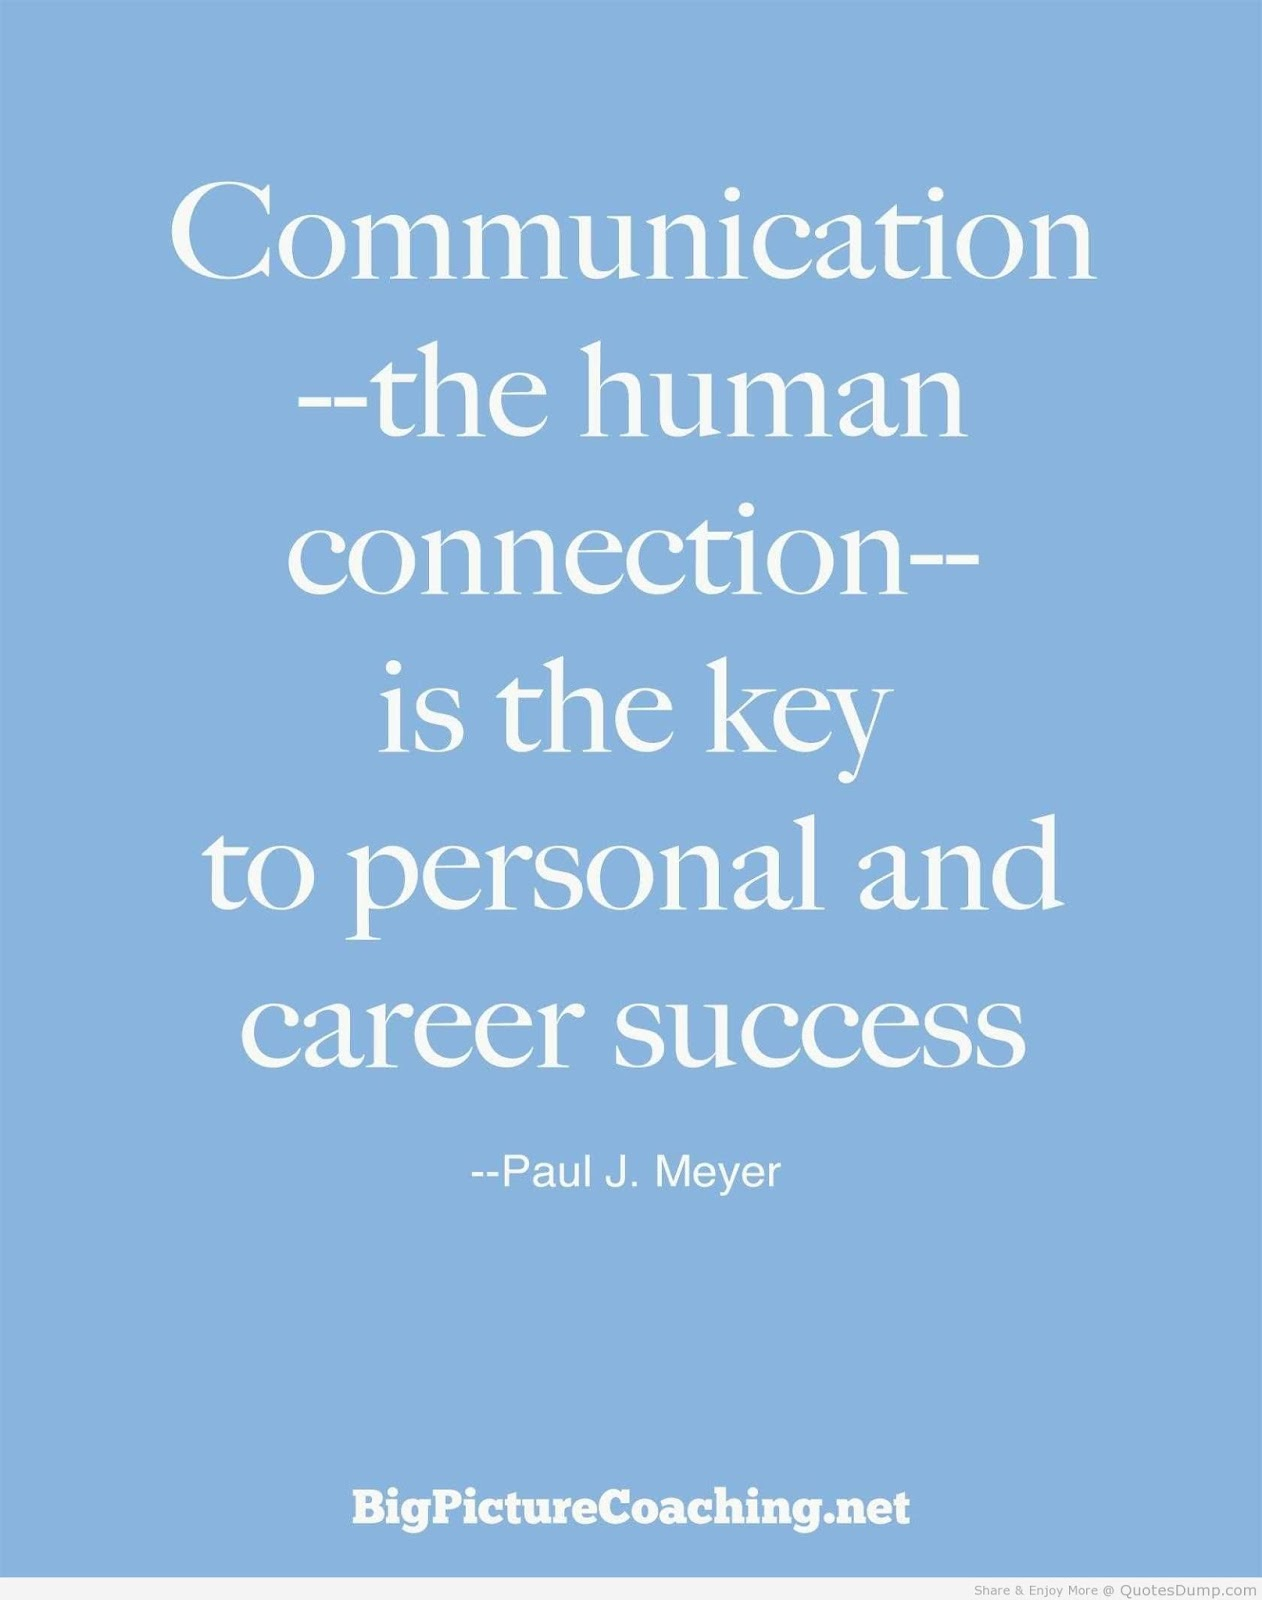 lessons learned from the bunny teacher communication the human dede is the co host of the total education q a which can be heard on blogtalk radio at blogtalkradio com totaltutor